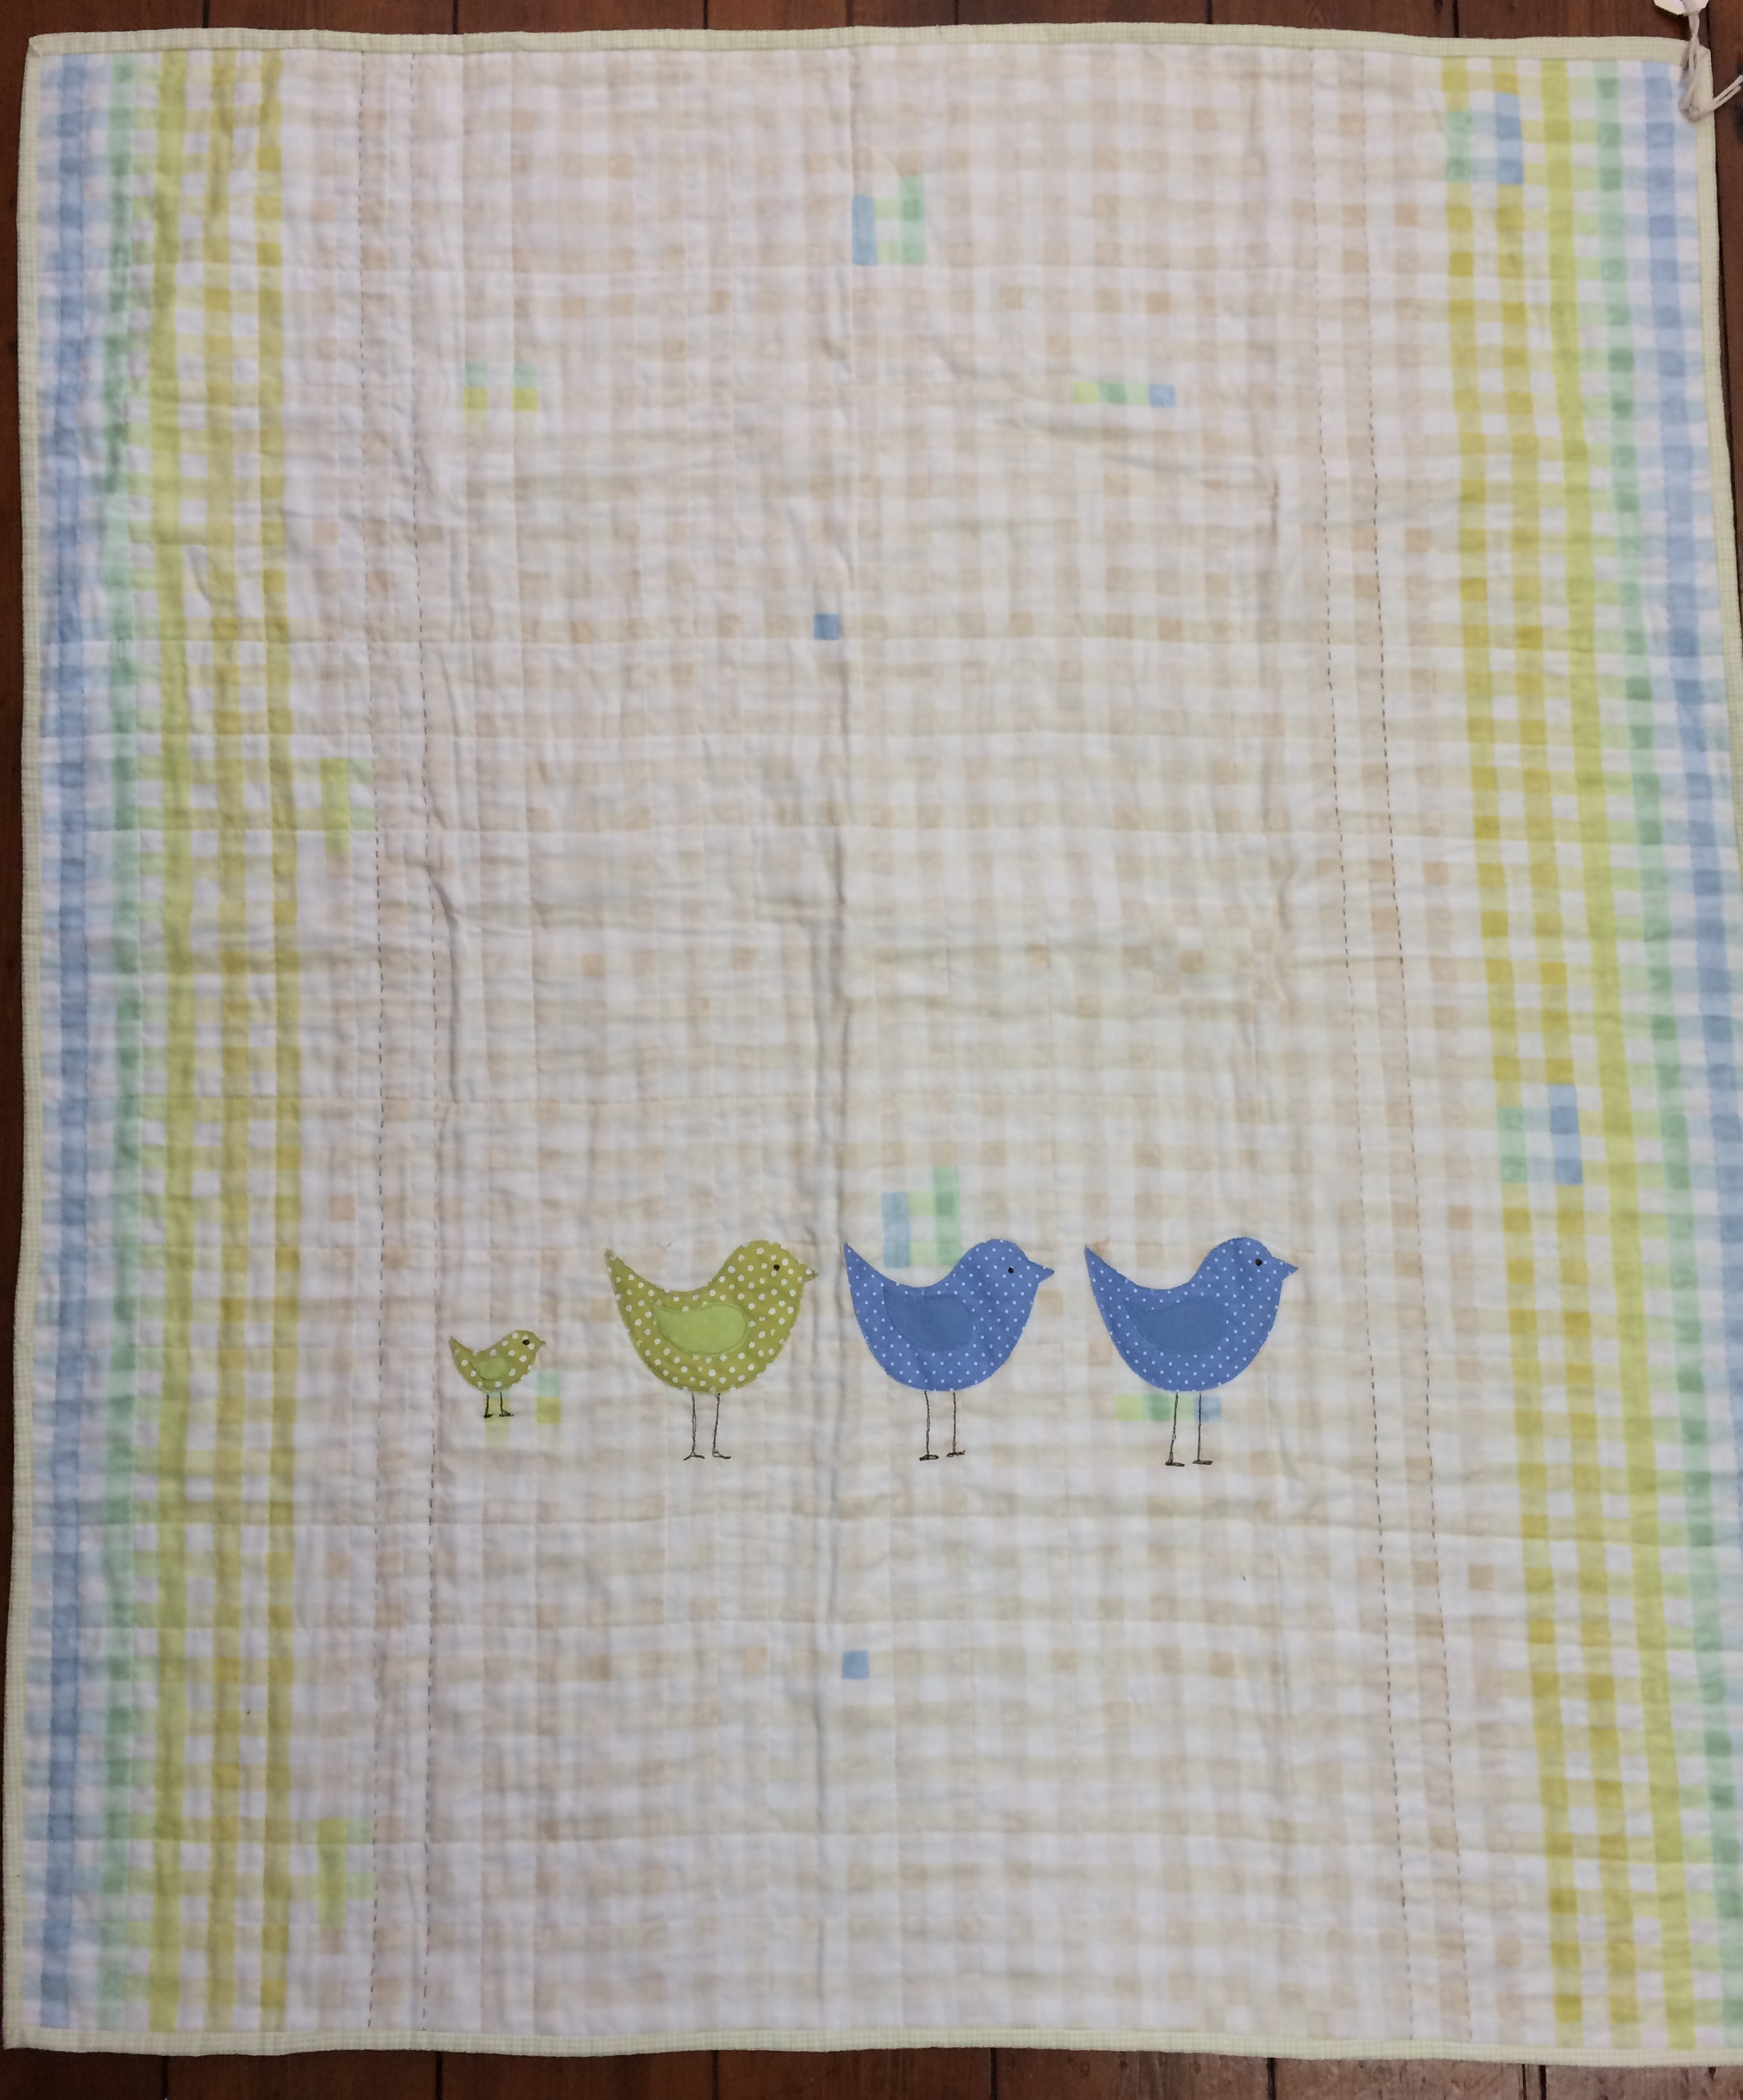 Birds appliquéd onto a whole cloth cot quilt.